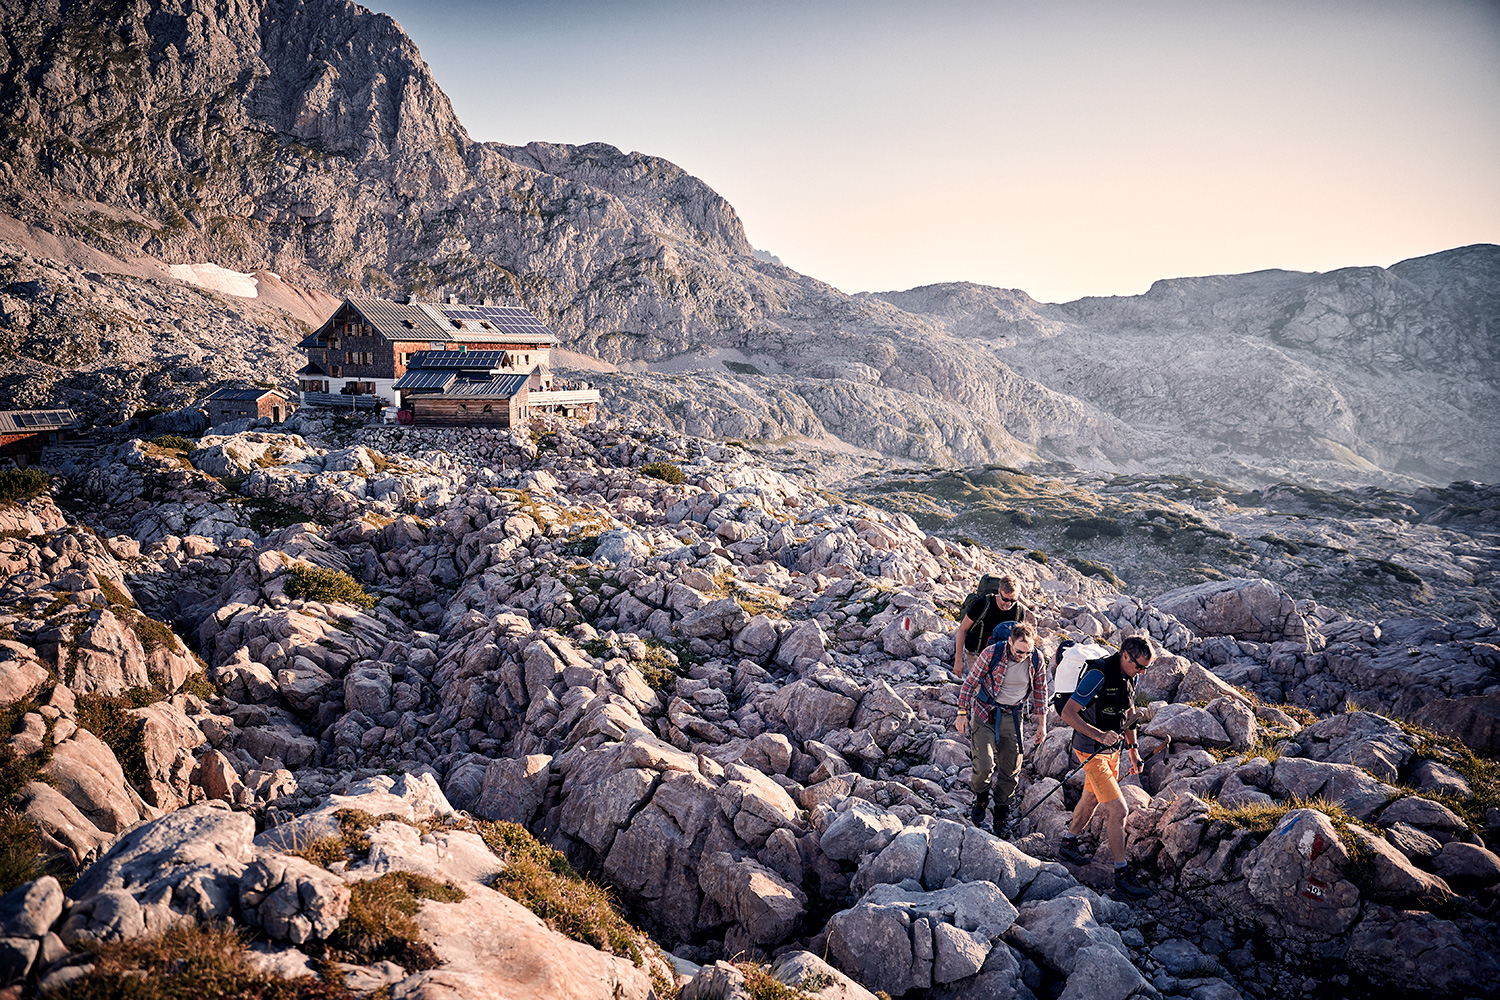 WALDEN Magazin founders Markus and Harald setting off from the mountain hut for their first mountaineering tour